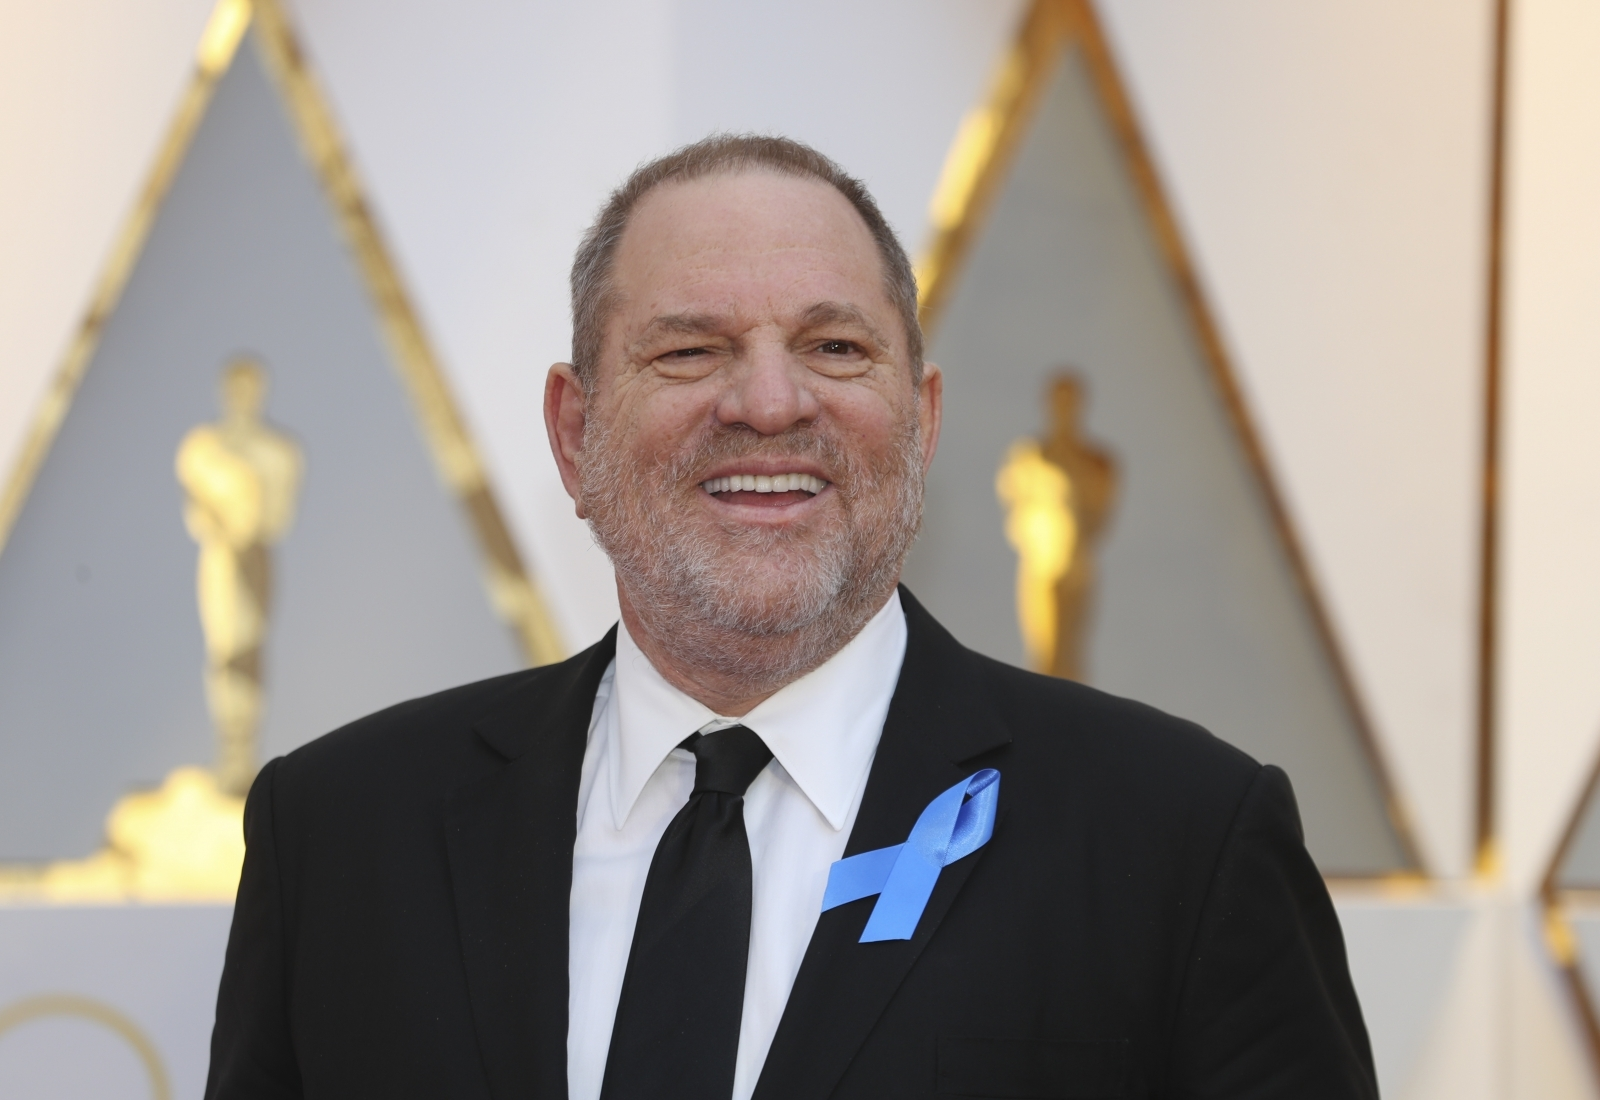 Harvey Weinstein denies rape accusations